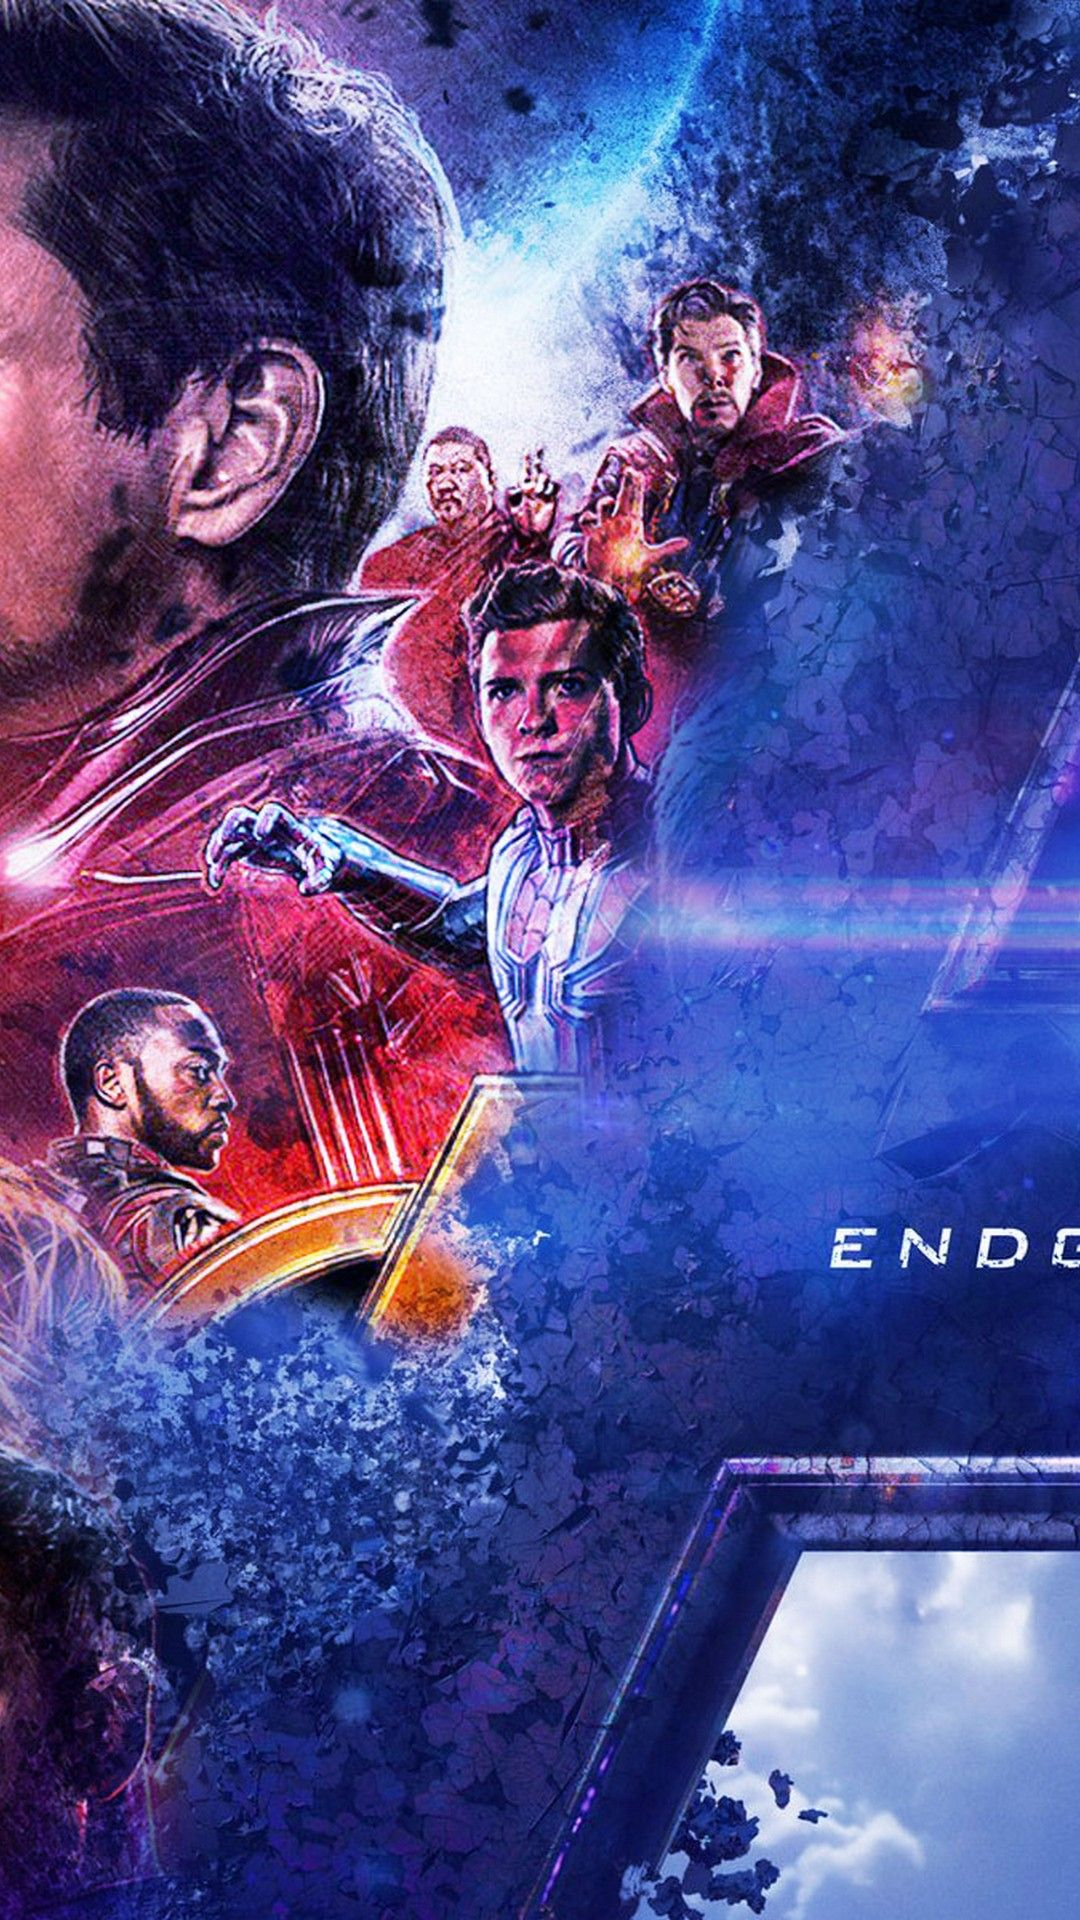 Marvel Endgame Background In 2020 Android Wallpaper Hd Wallpapers For Mobile Wall Graphics Design